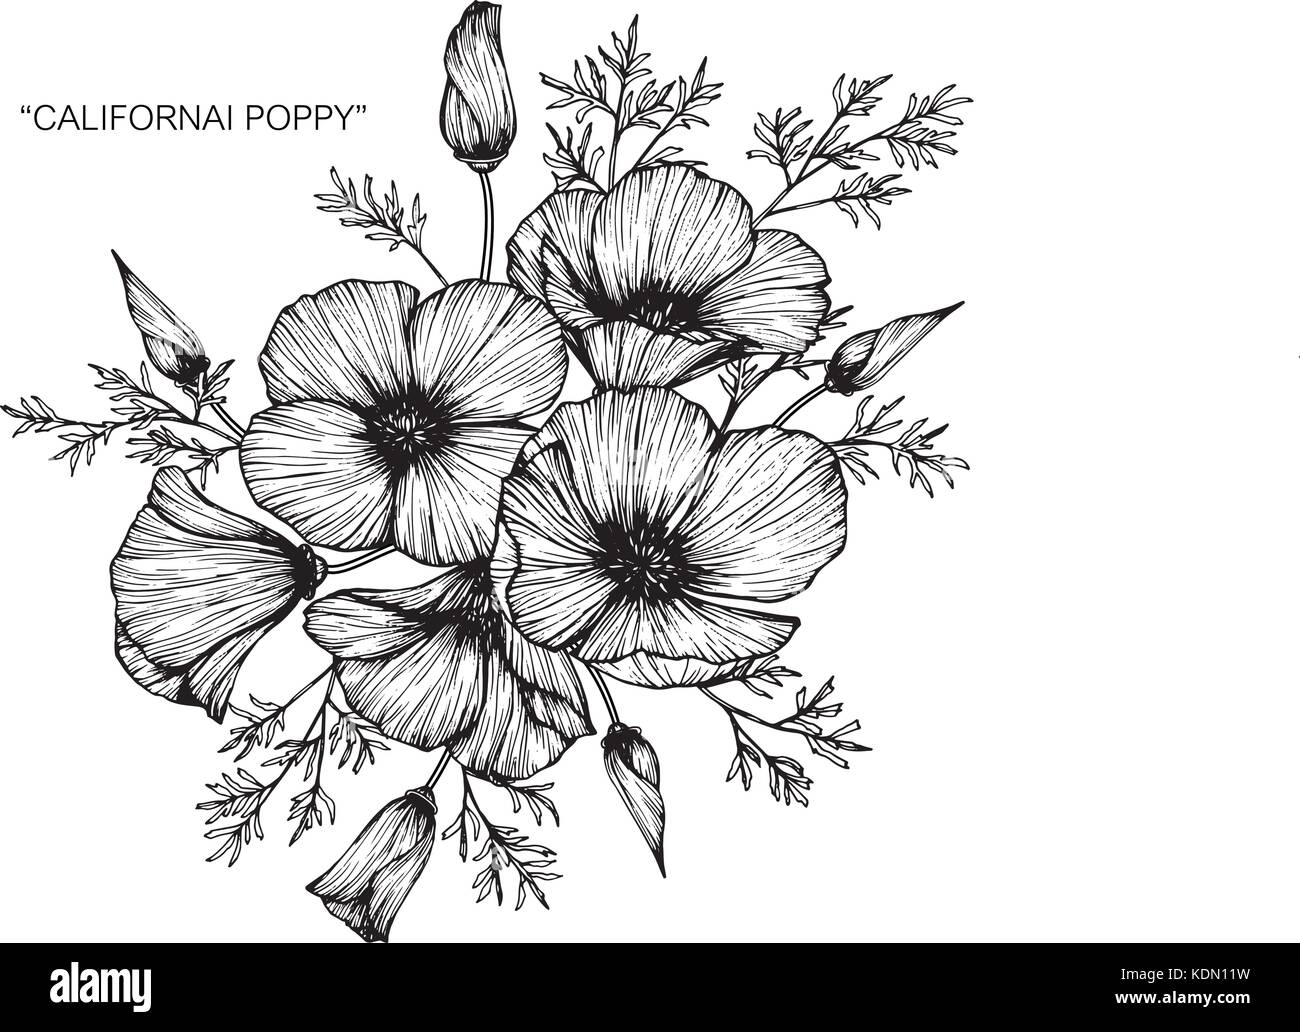 California Poppy Flower Drawing Illustration Black And White With